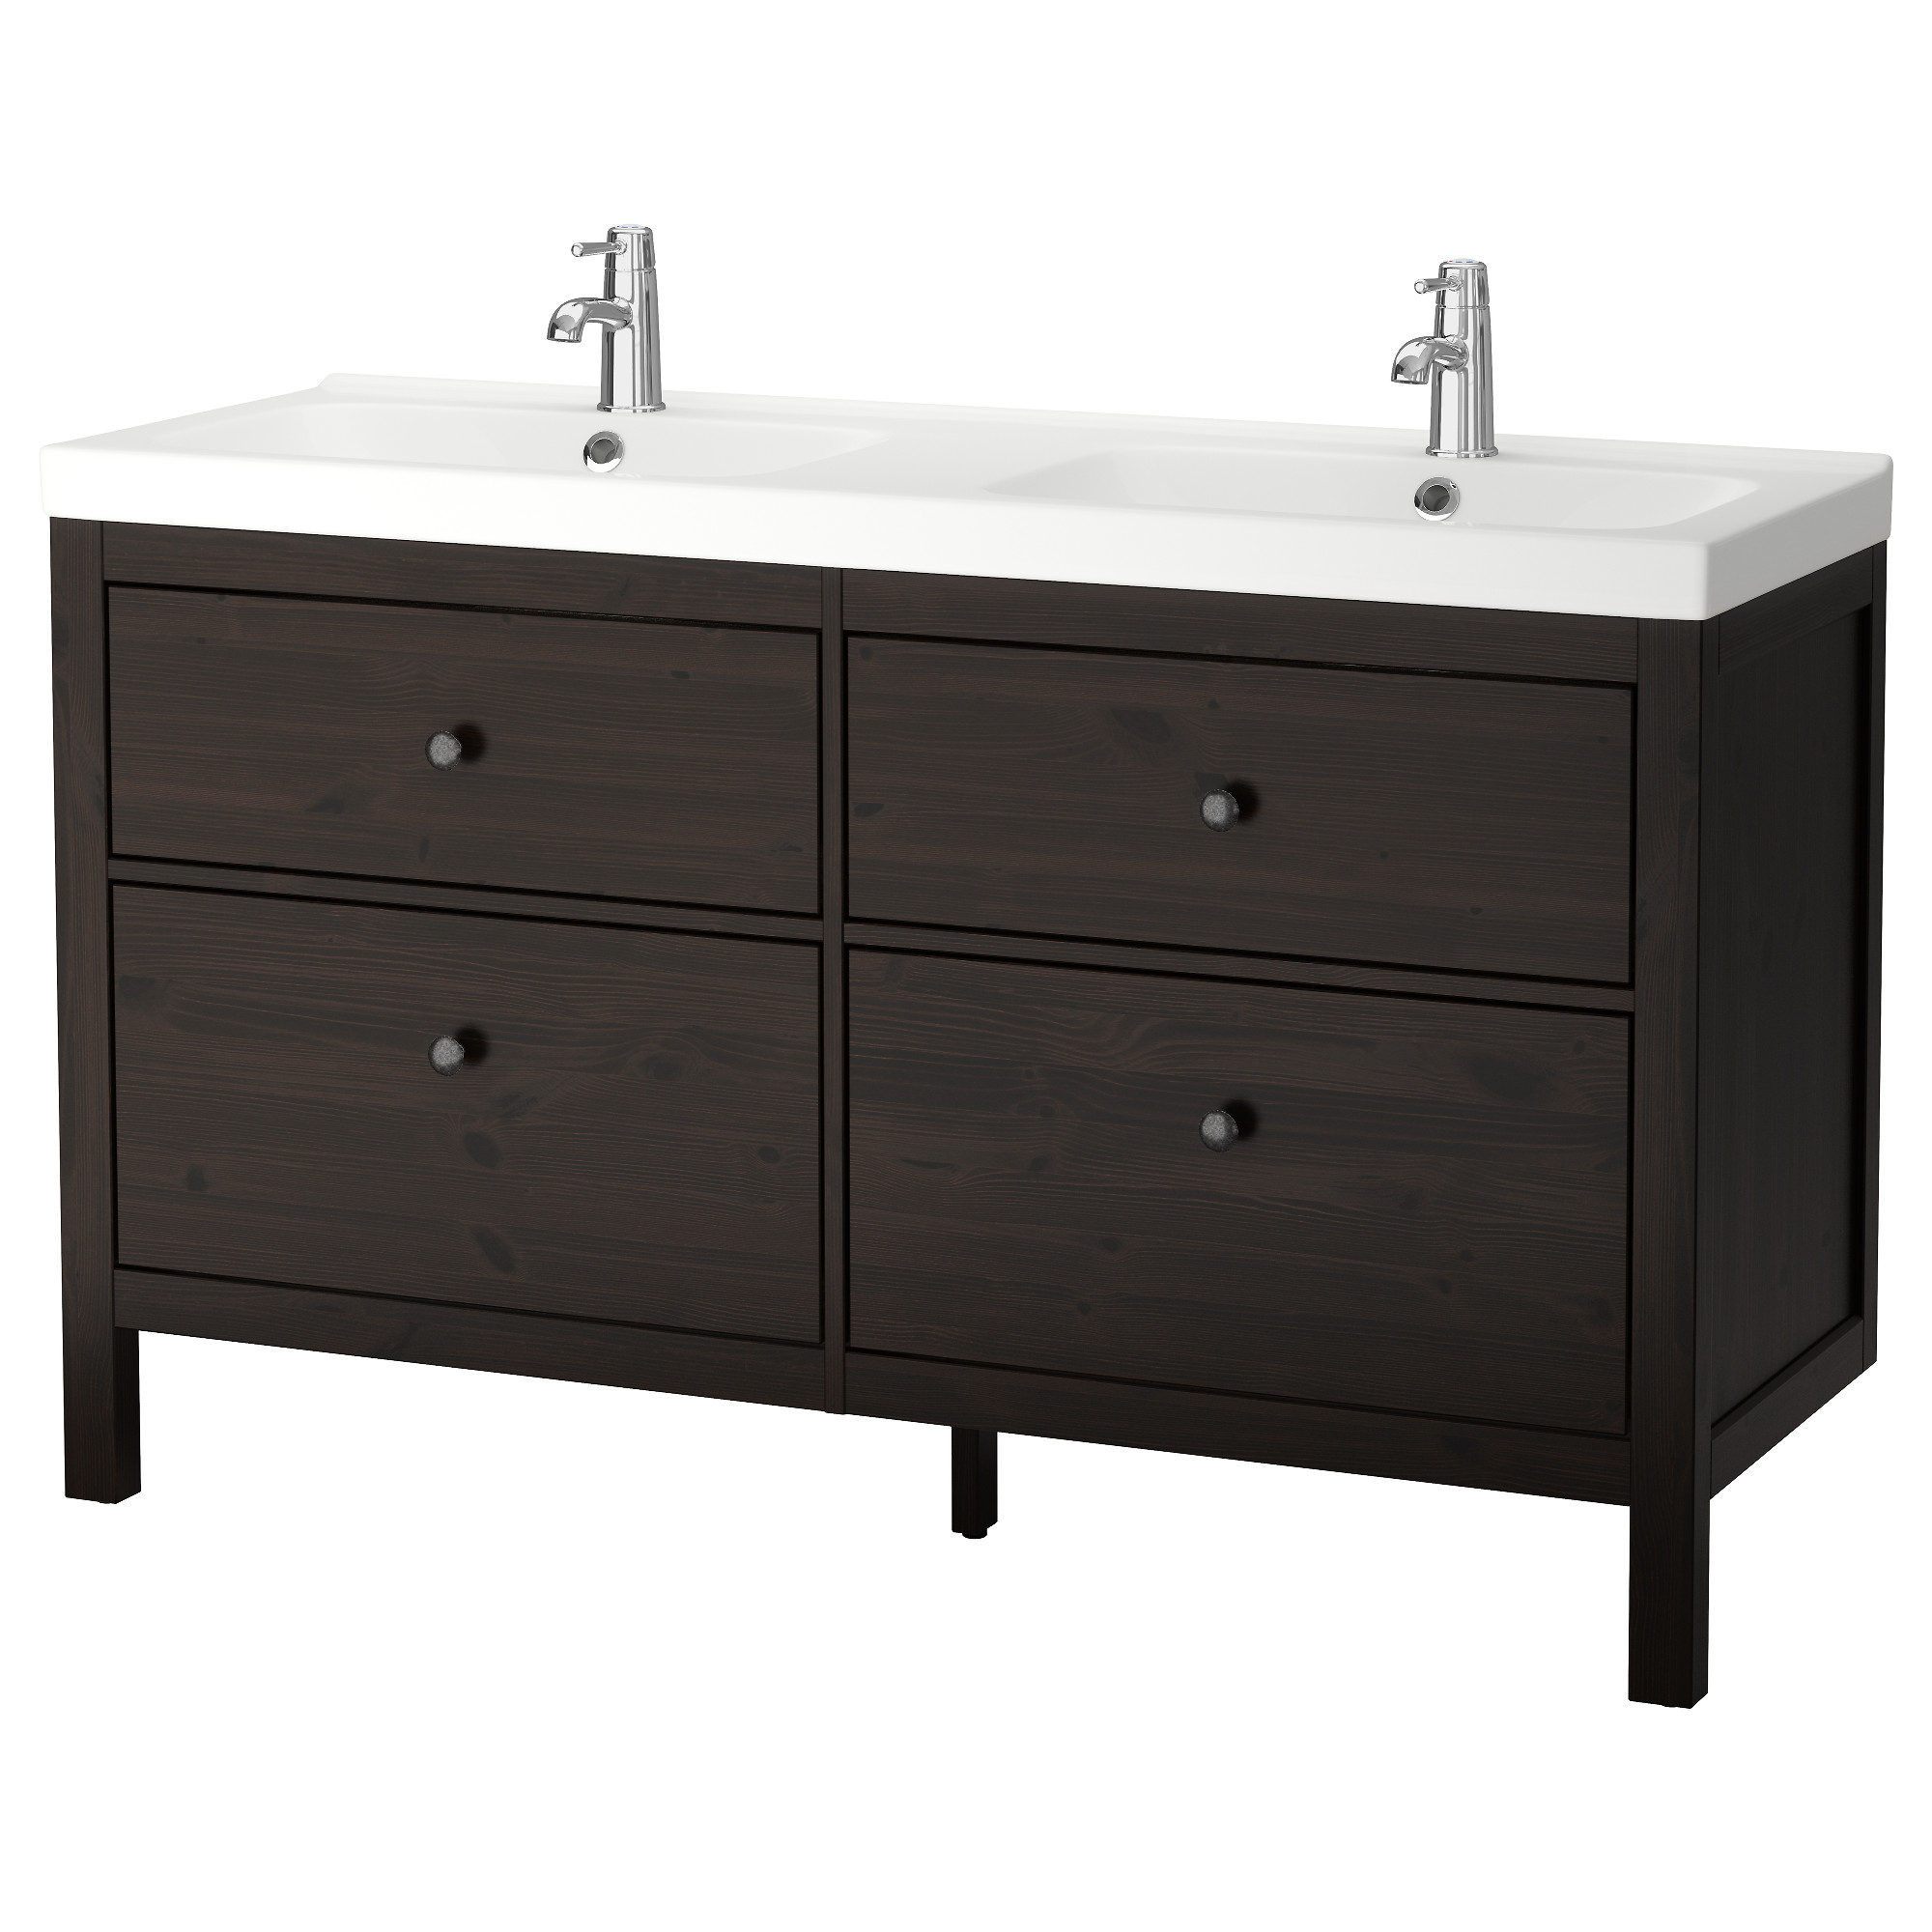 Hemnes Odensvik Sink Cabinet With 4 Drawers Black Brown Stain Ikea